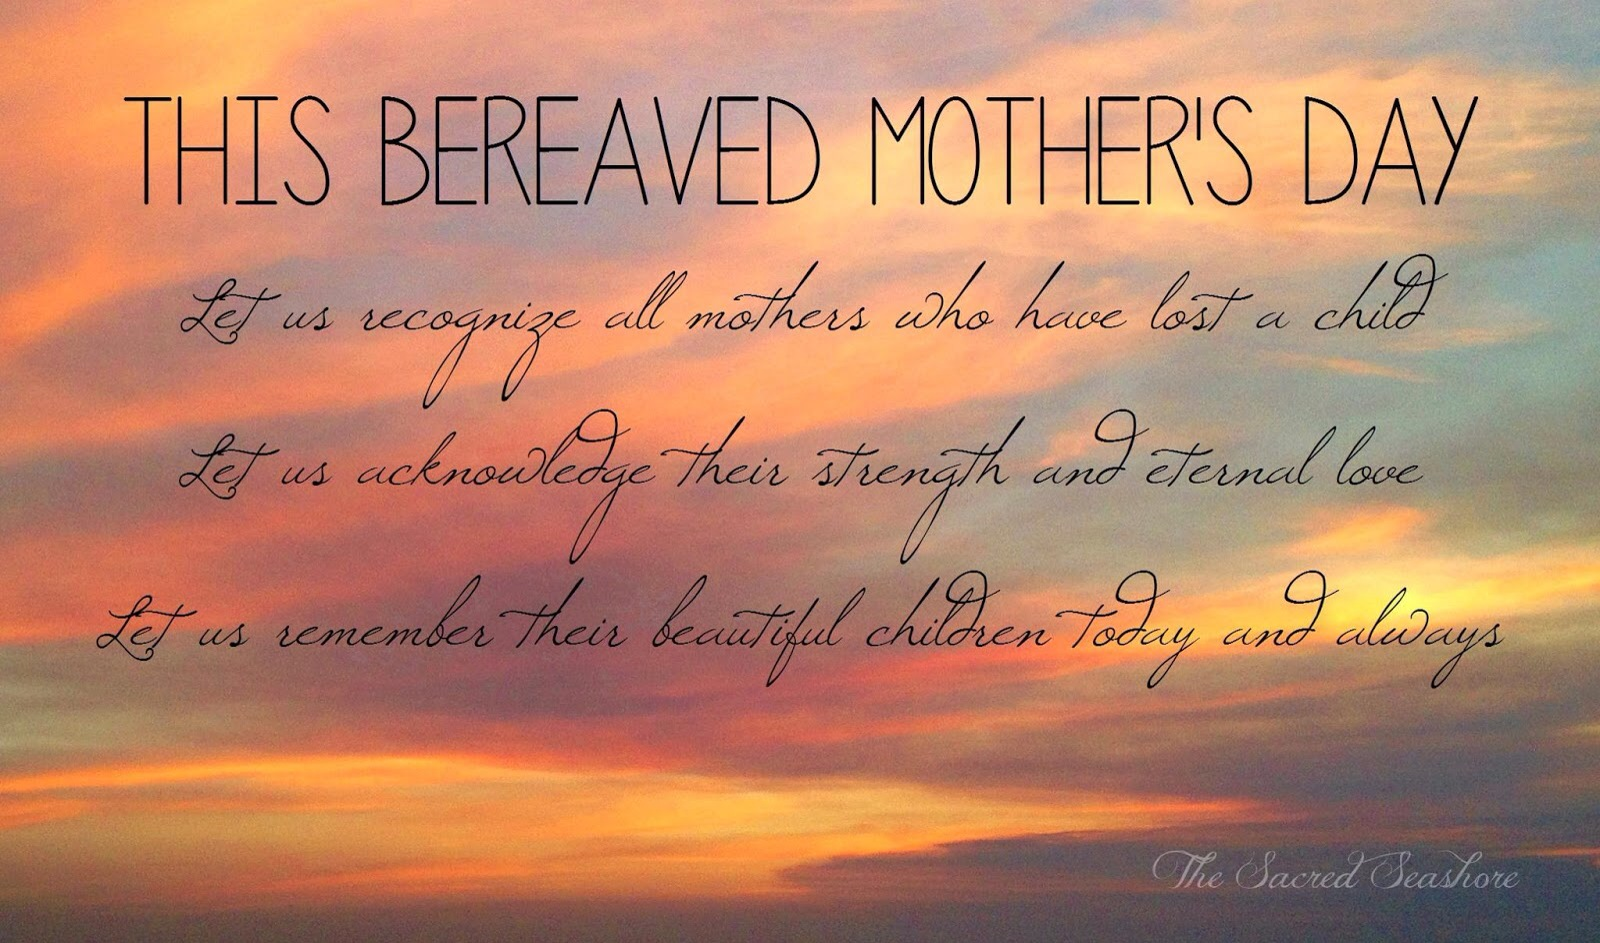 Bereaved Mothers Day